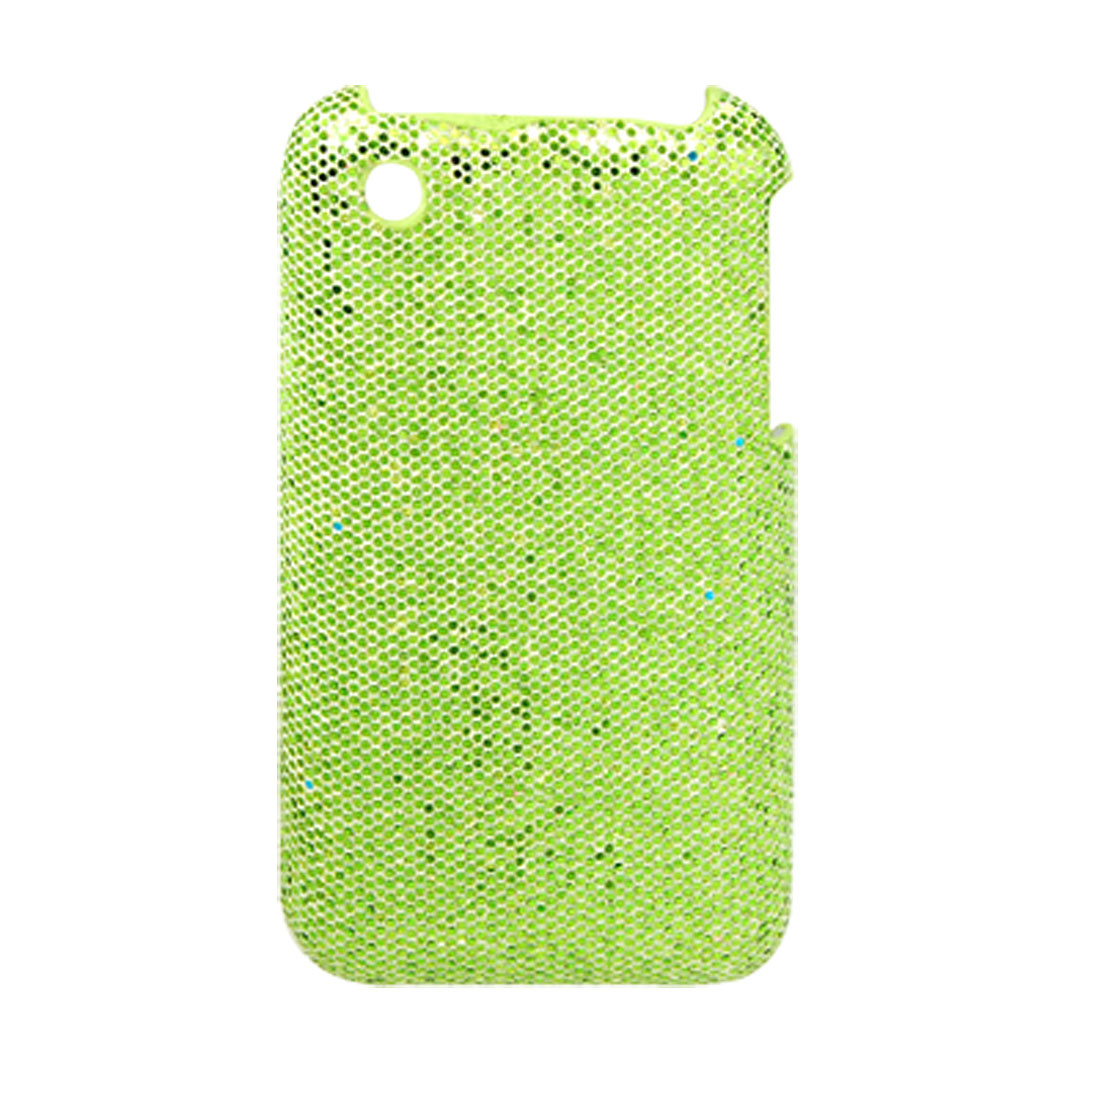 Yellowgreen Plastic Glittery Back Case Cover for iPhone 3G